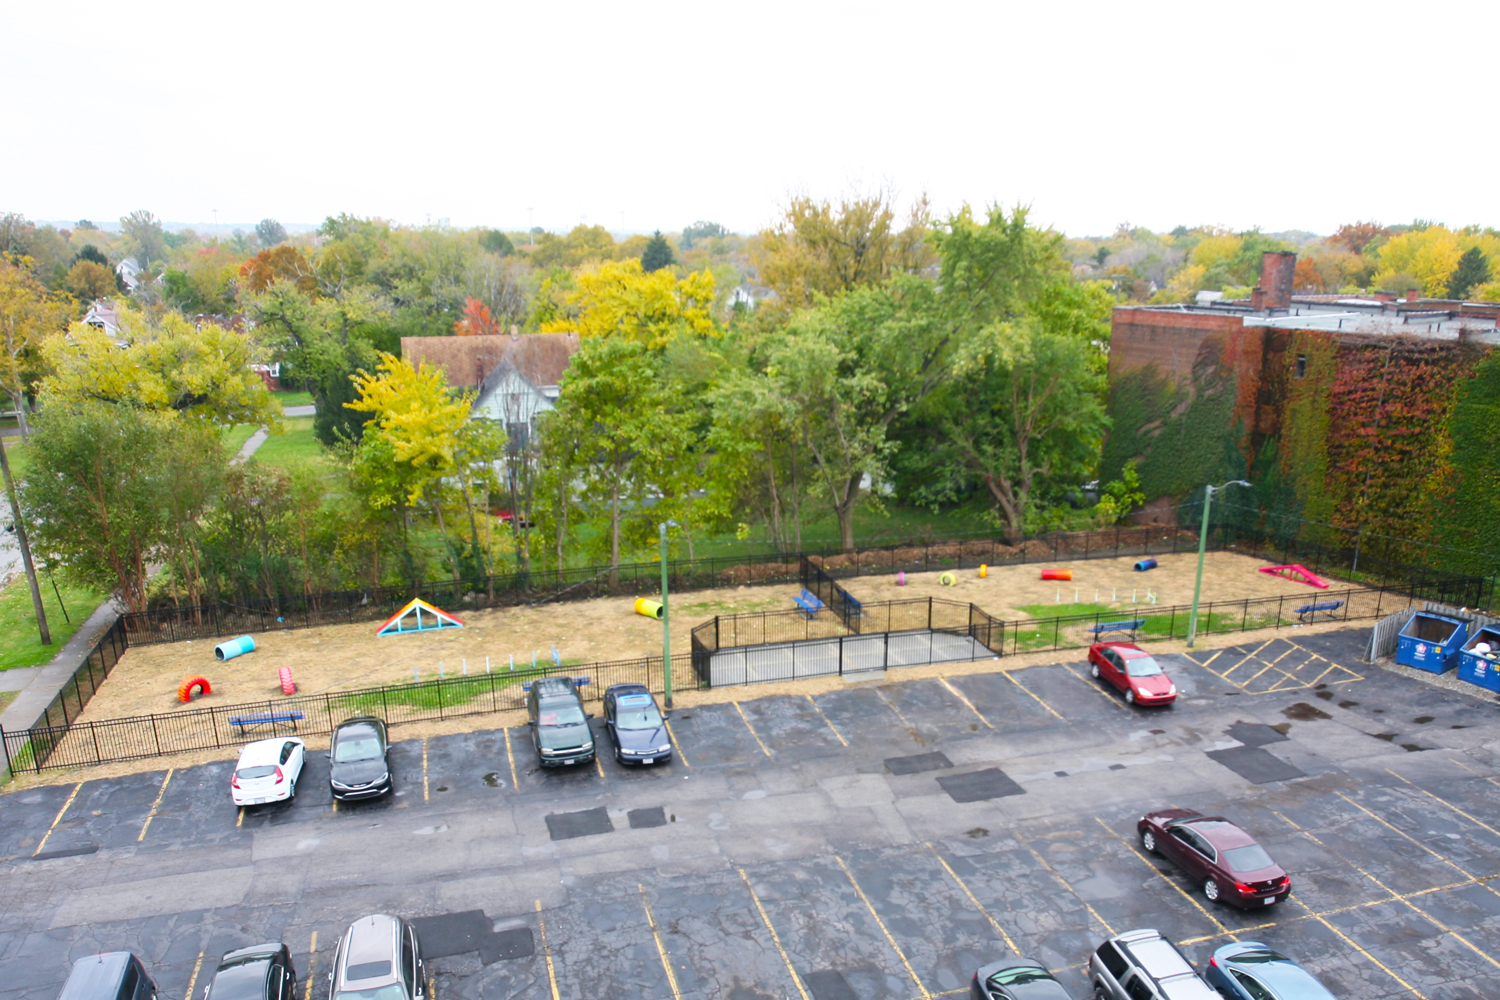 View of Parking Lot and dog Park